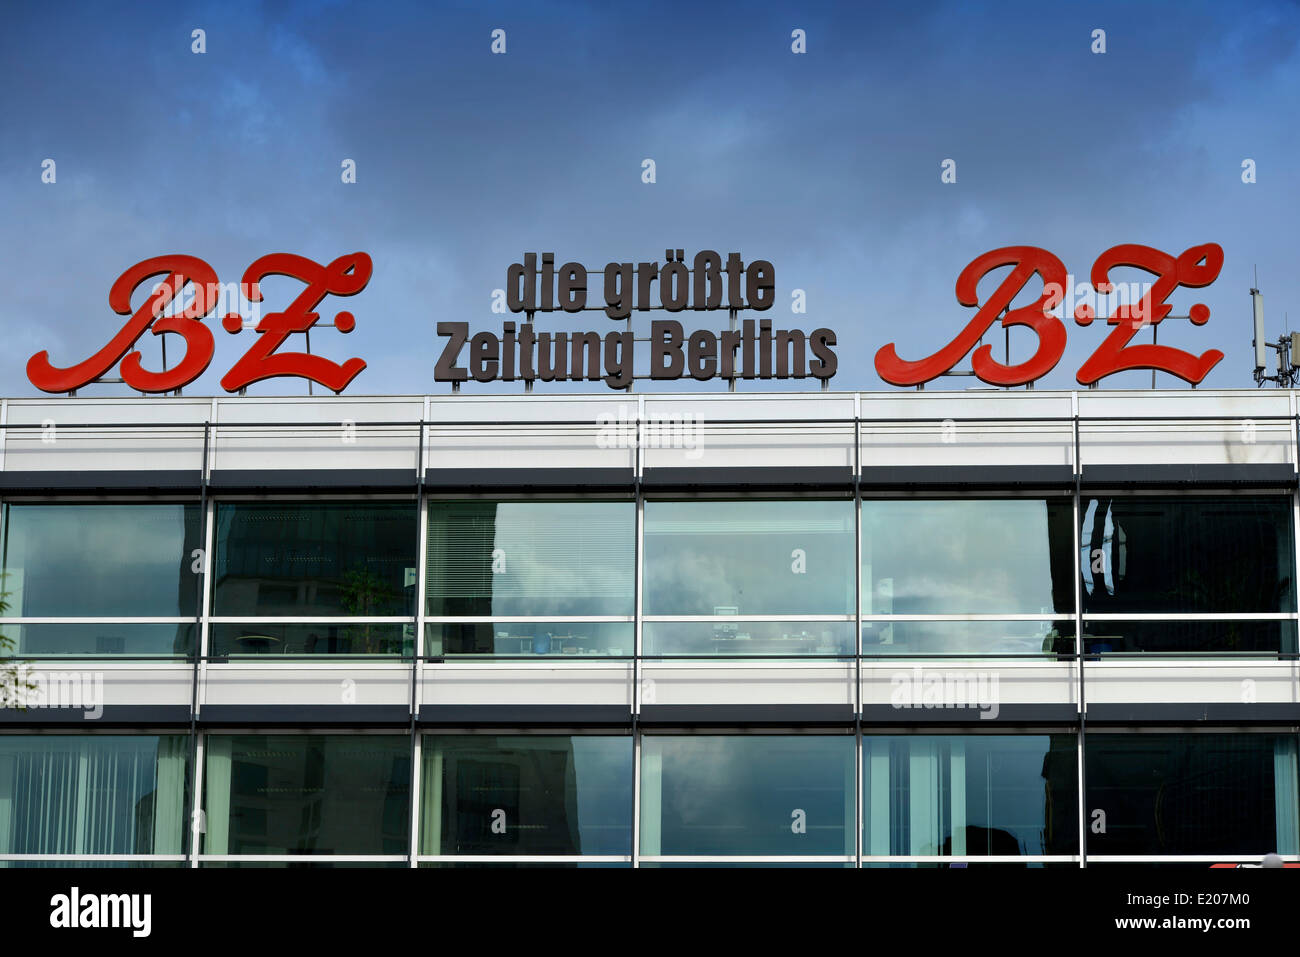 Façade advertising of the Berlin tabloid newspaper B.Z., Wittenbergplatz square, Berlin, Germany Stock Photo